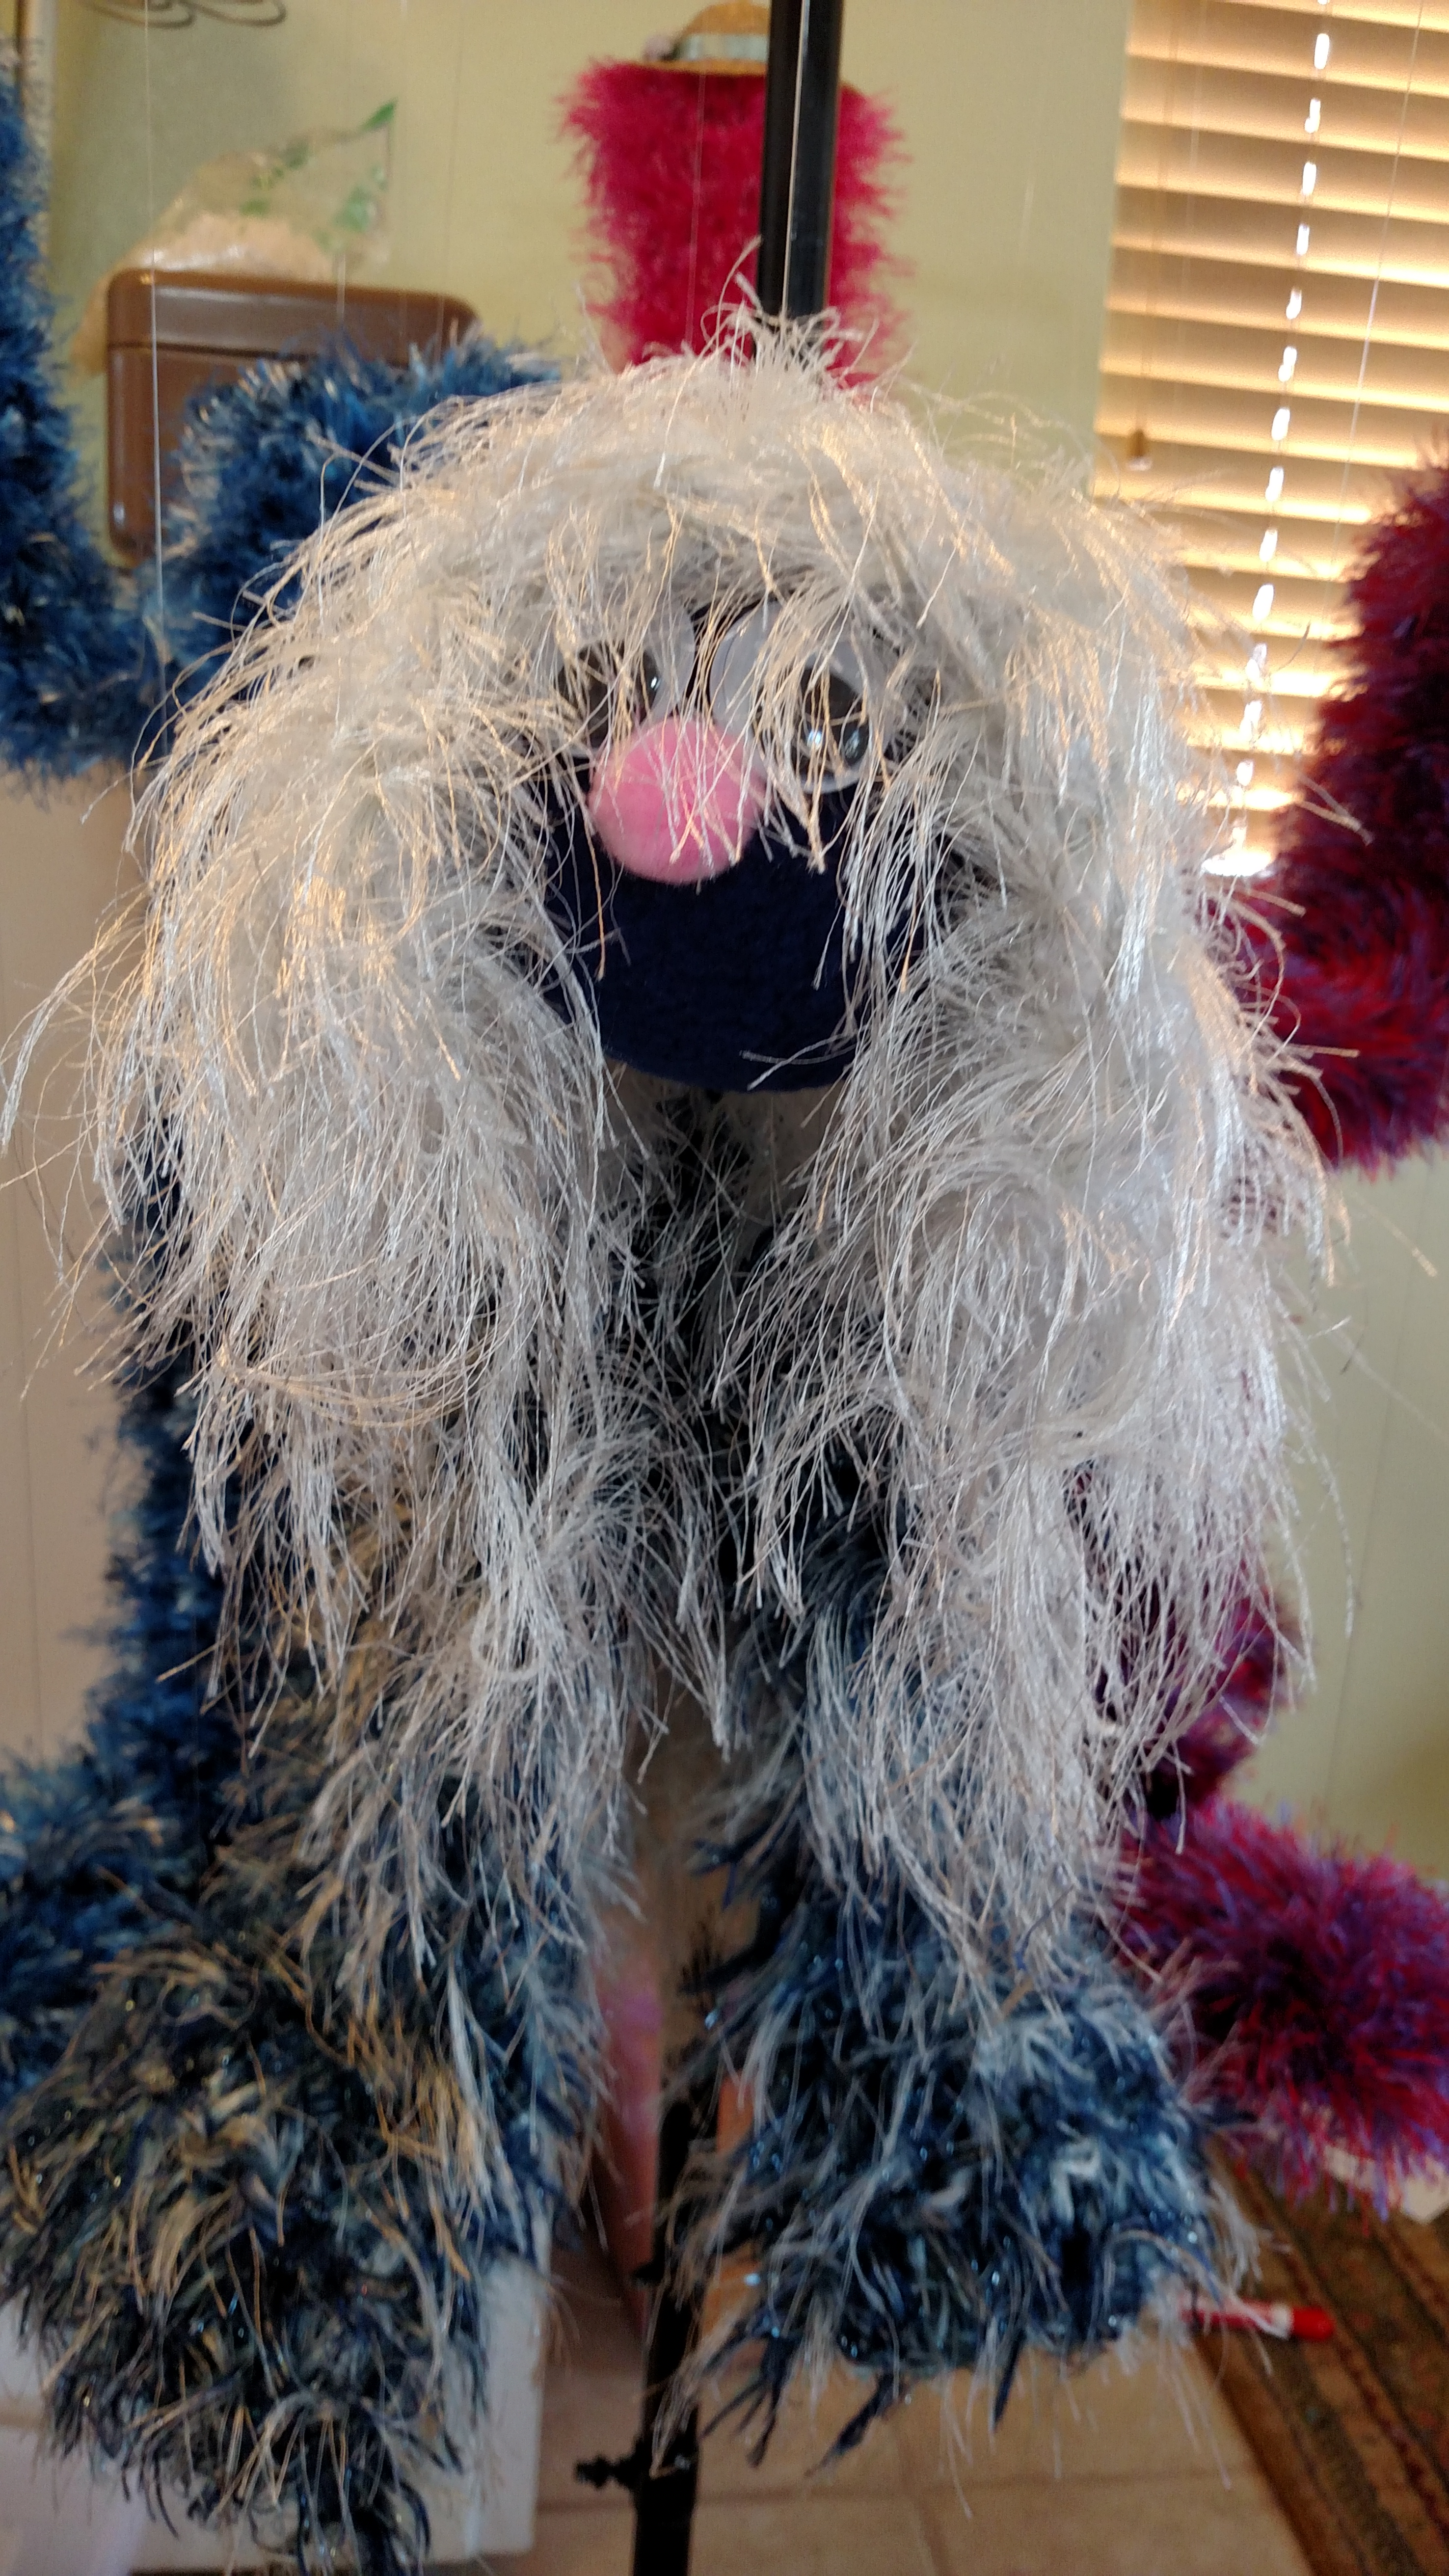 Two Legged Fuzzy Marionette Puppet